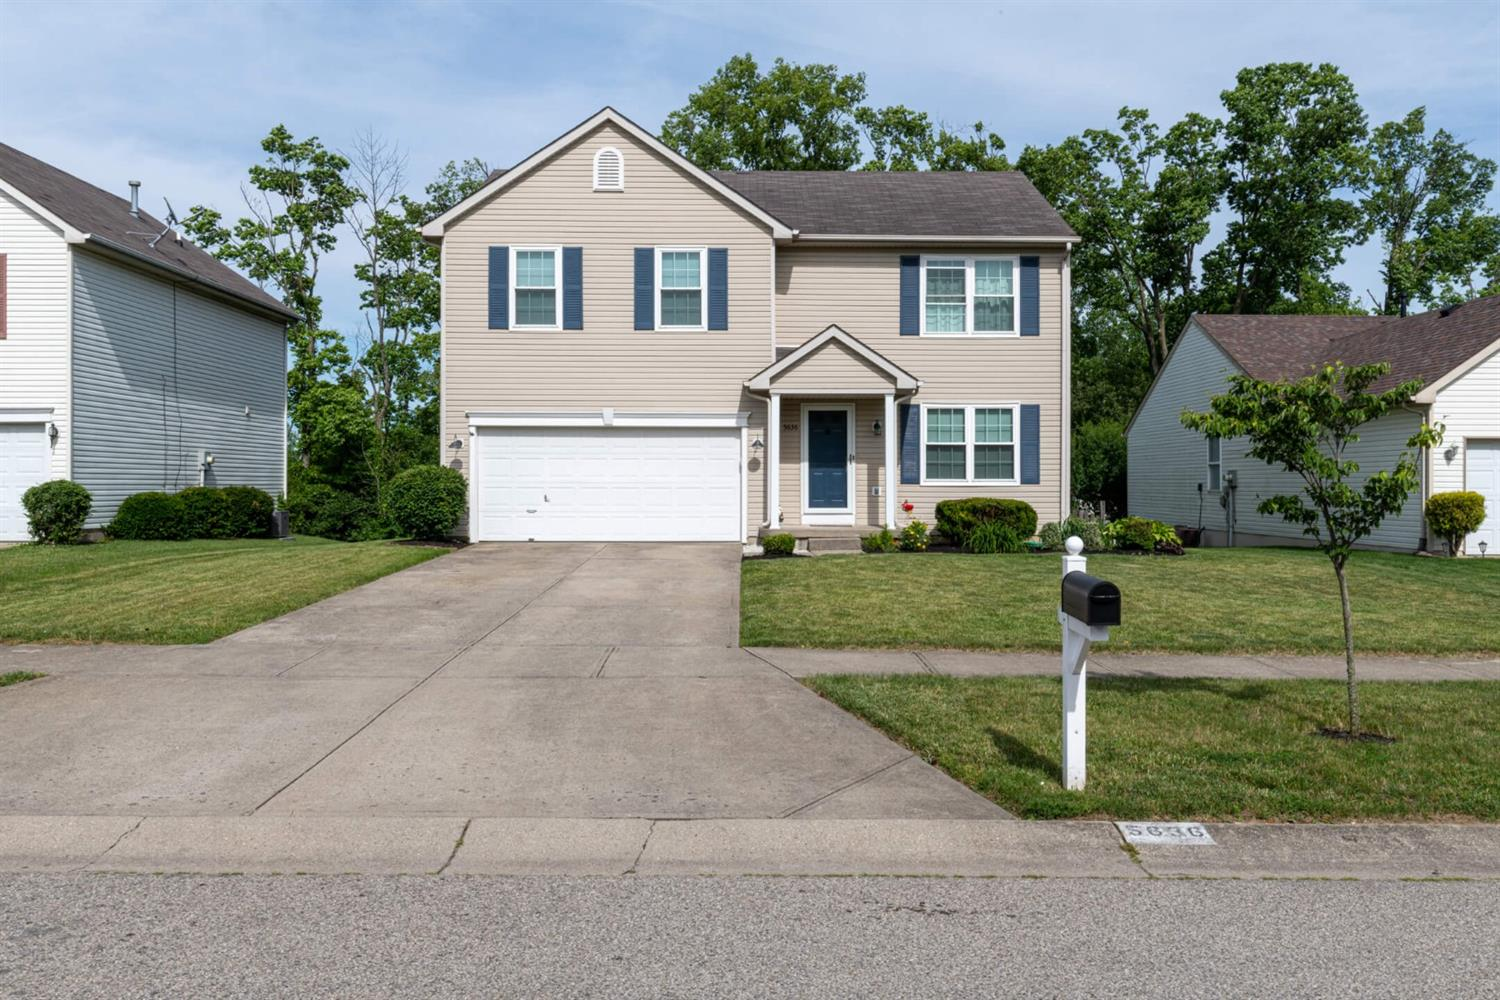 Property for sale at 5636 Autumn Drive, Middletown,  Ohio 45042